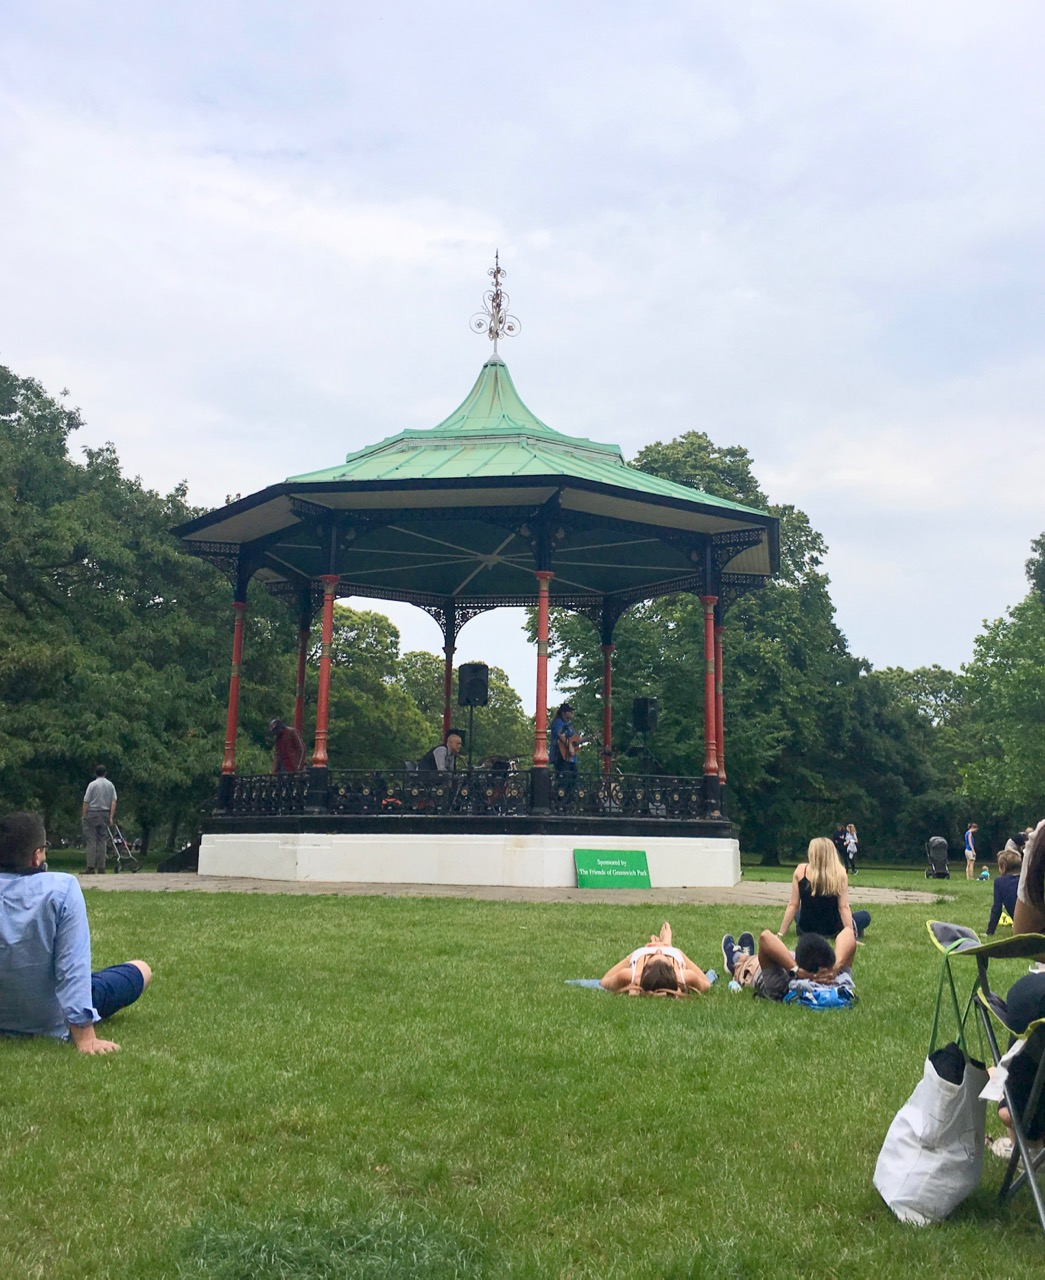 The bandstand concerts in Greenwich Park